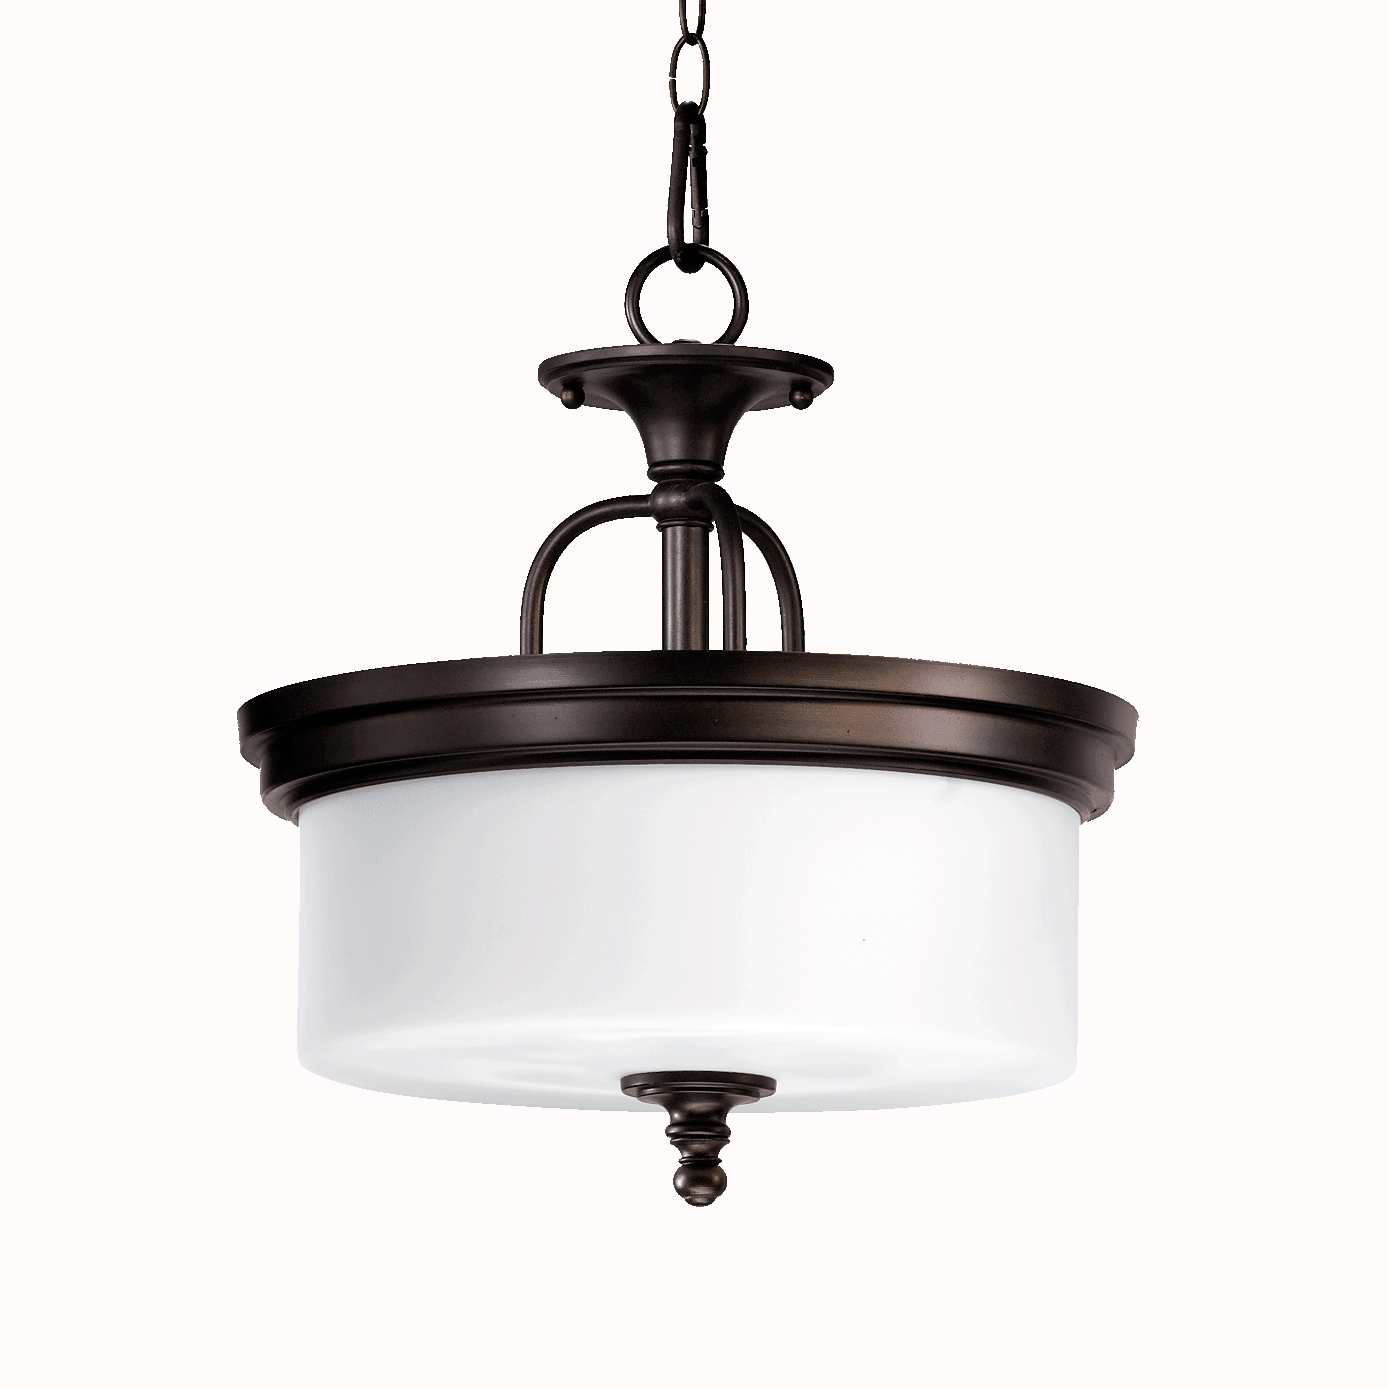 Quorum international 2890 14 86 3 light down lighting convertible ceiling fixture